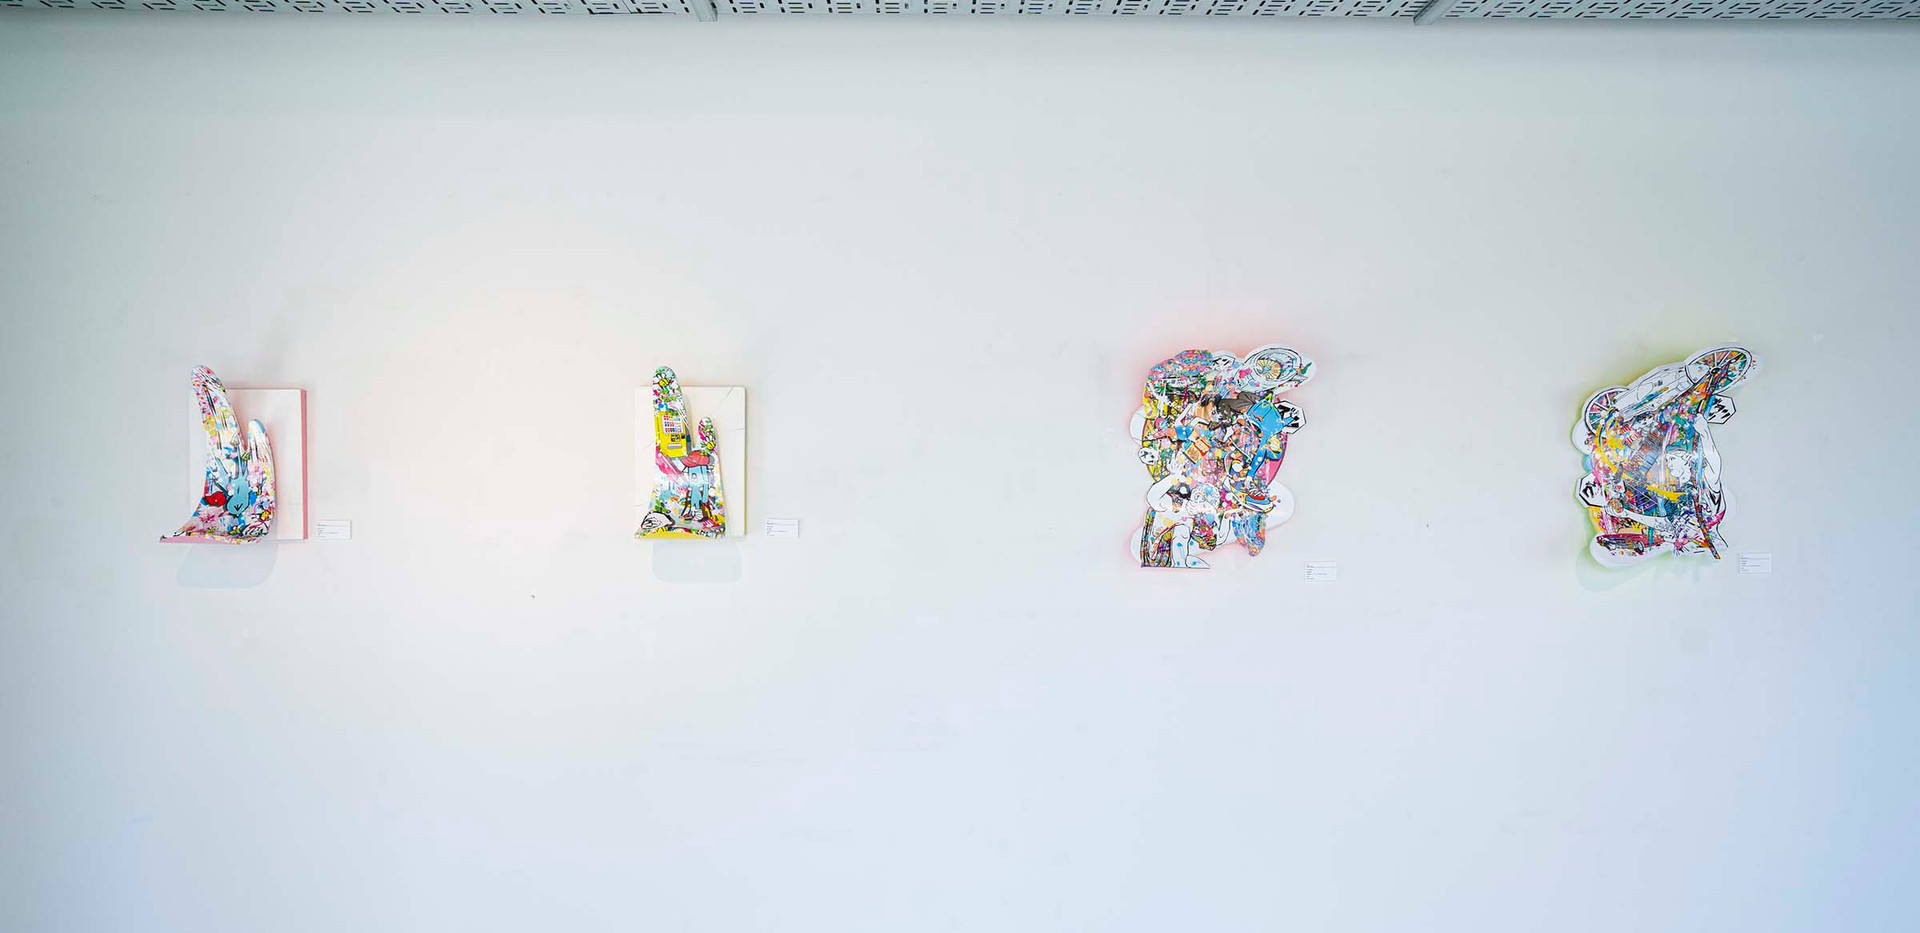 Solo Exhibition 2020 : With Simultaneity